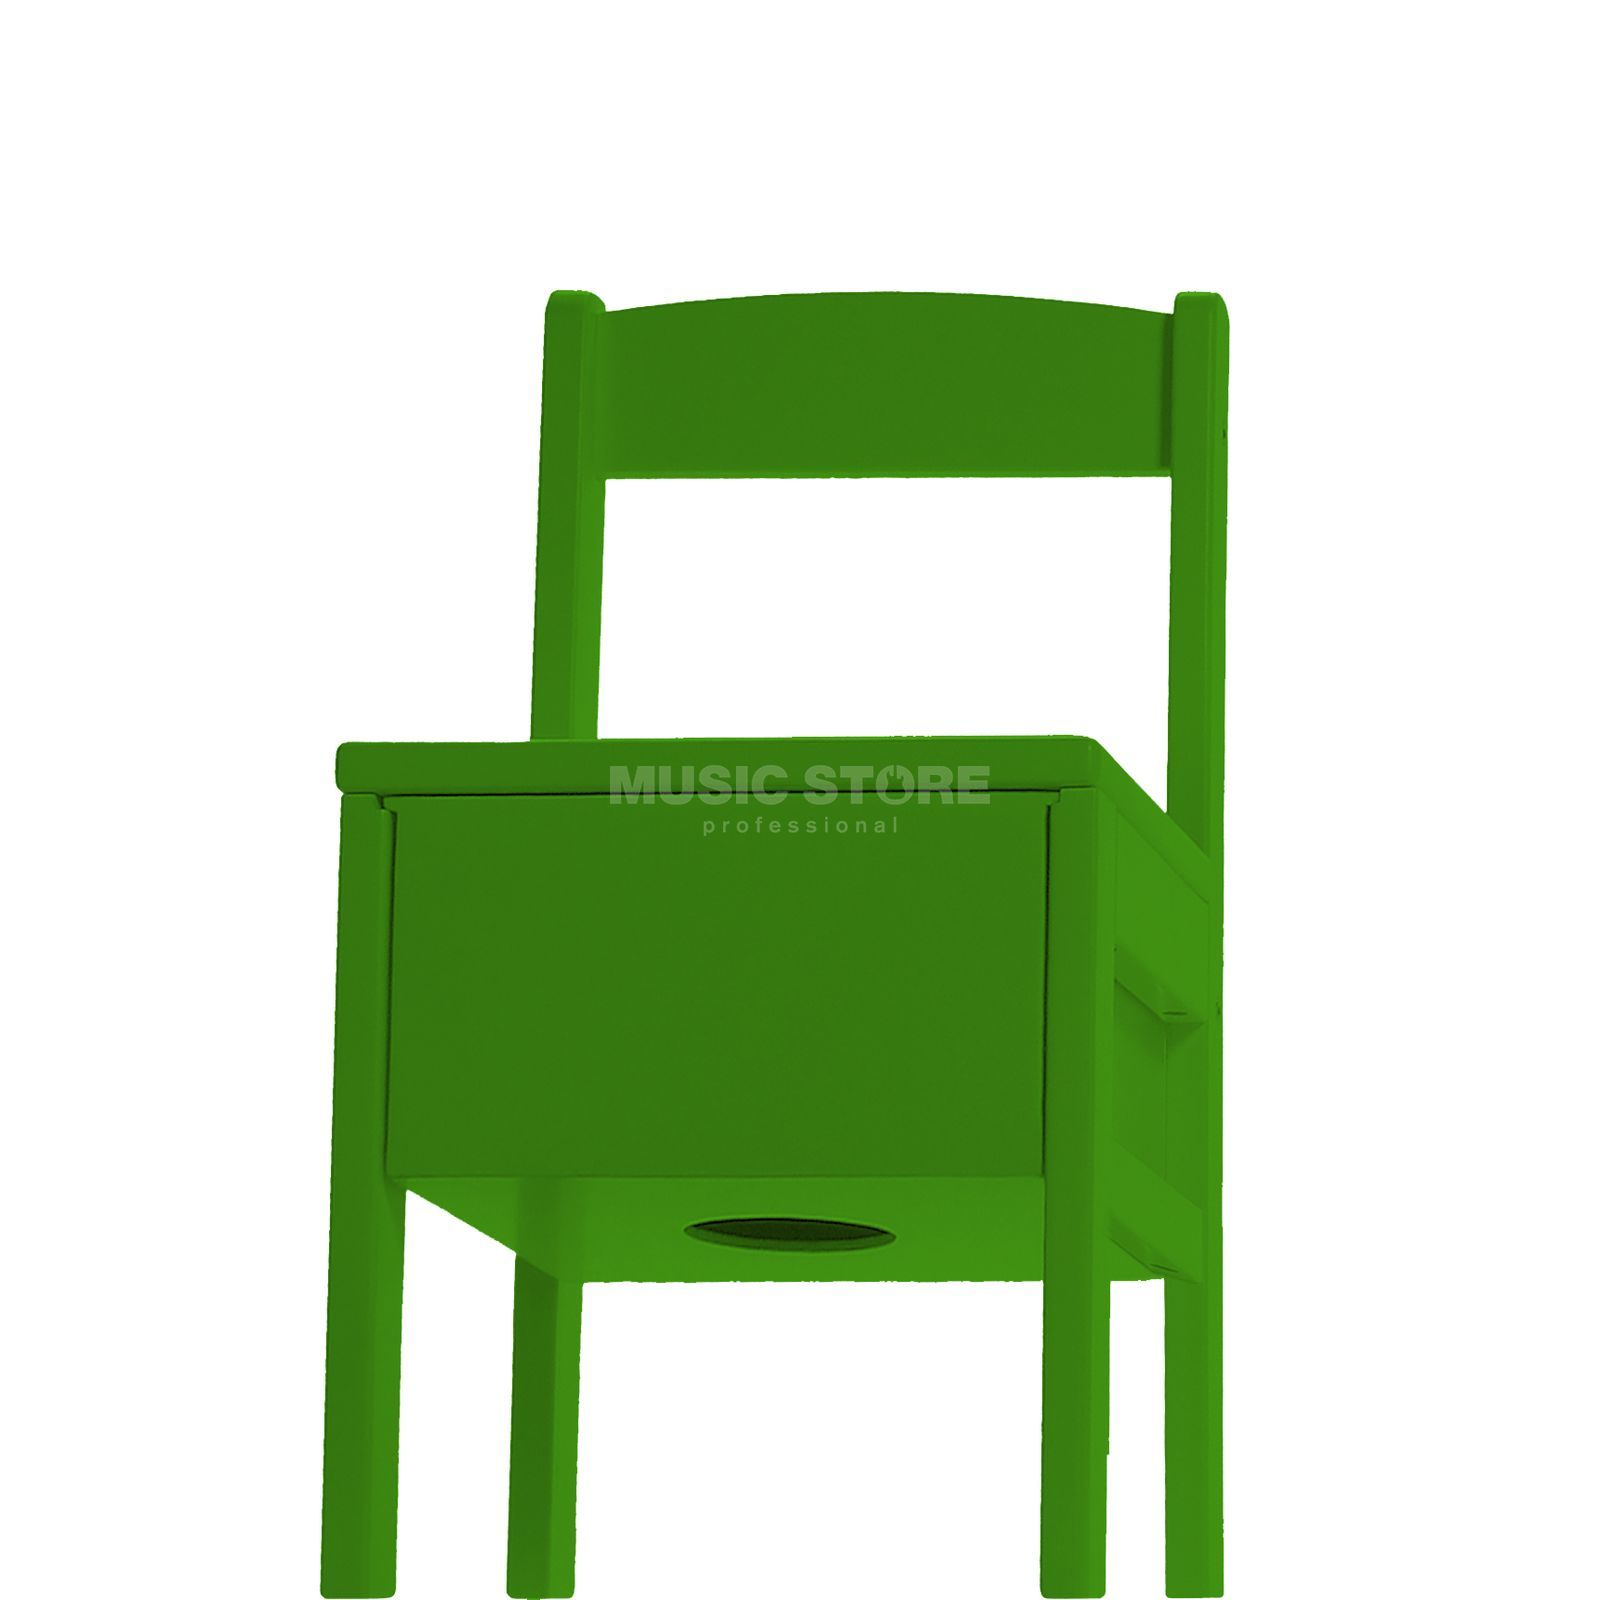 Baff Children Drumming Stool S, green Product Image